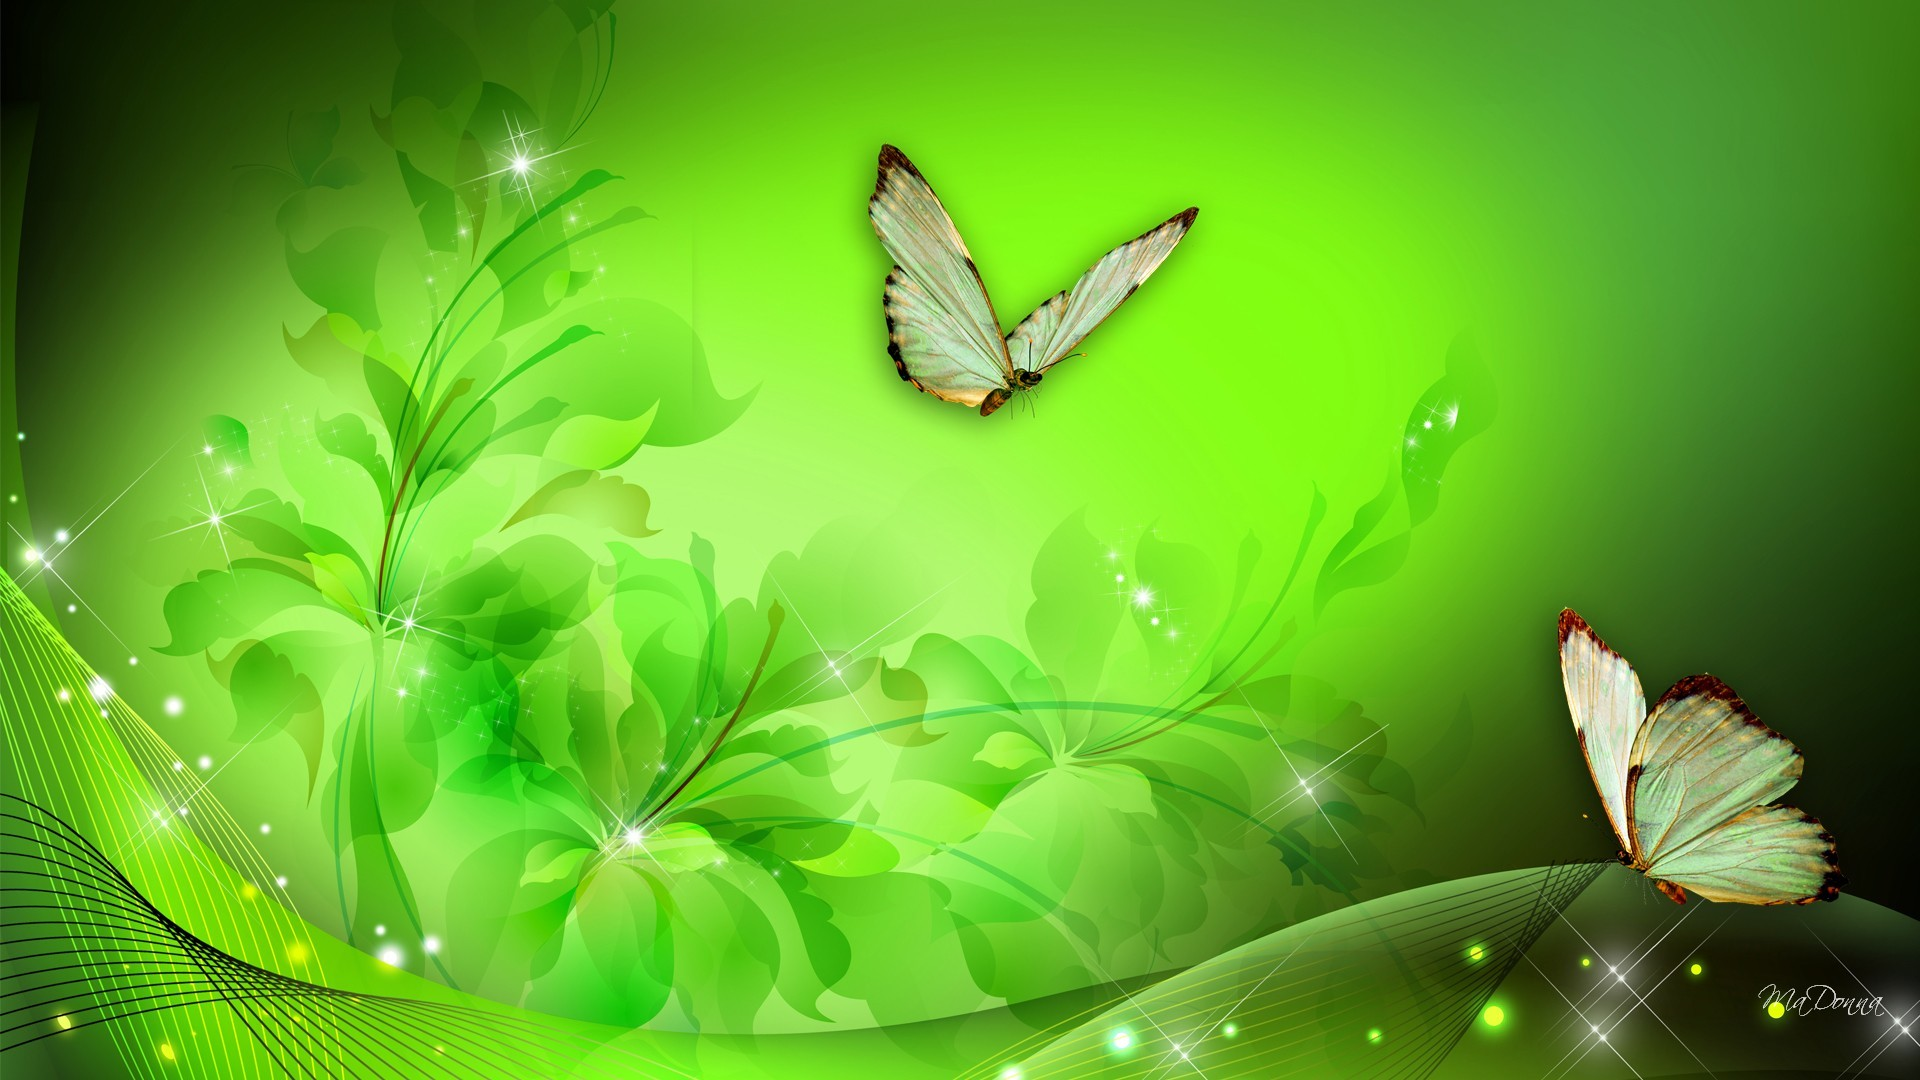 Neon Green And Blue Backgrounds